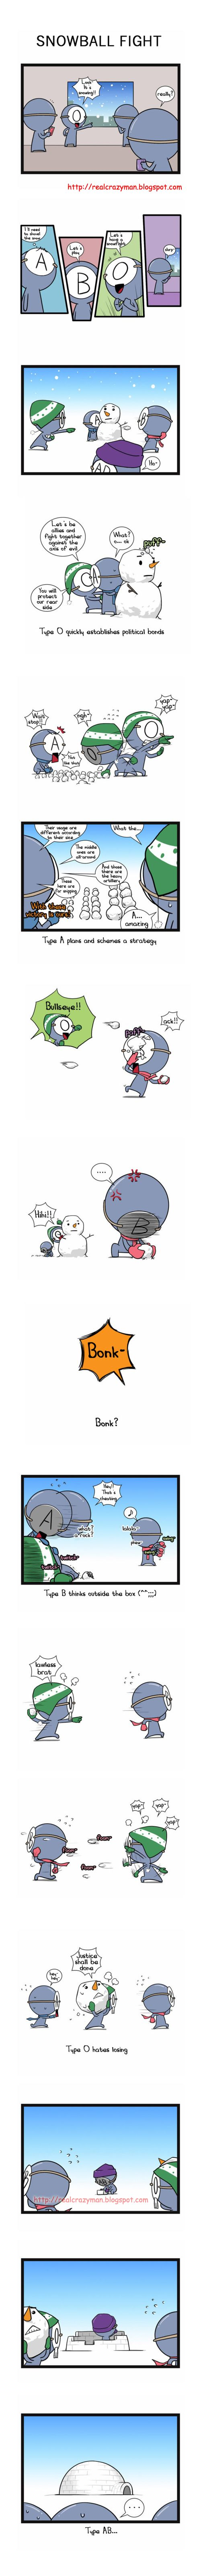 Blood Types Comic: Snowball Fight